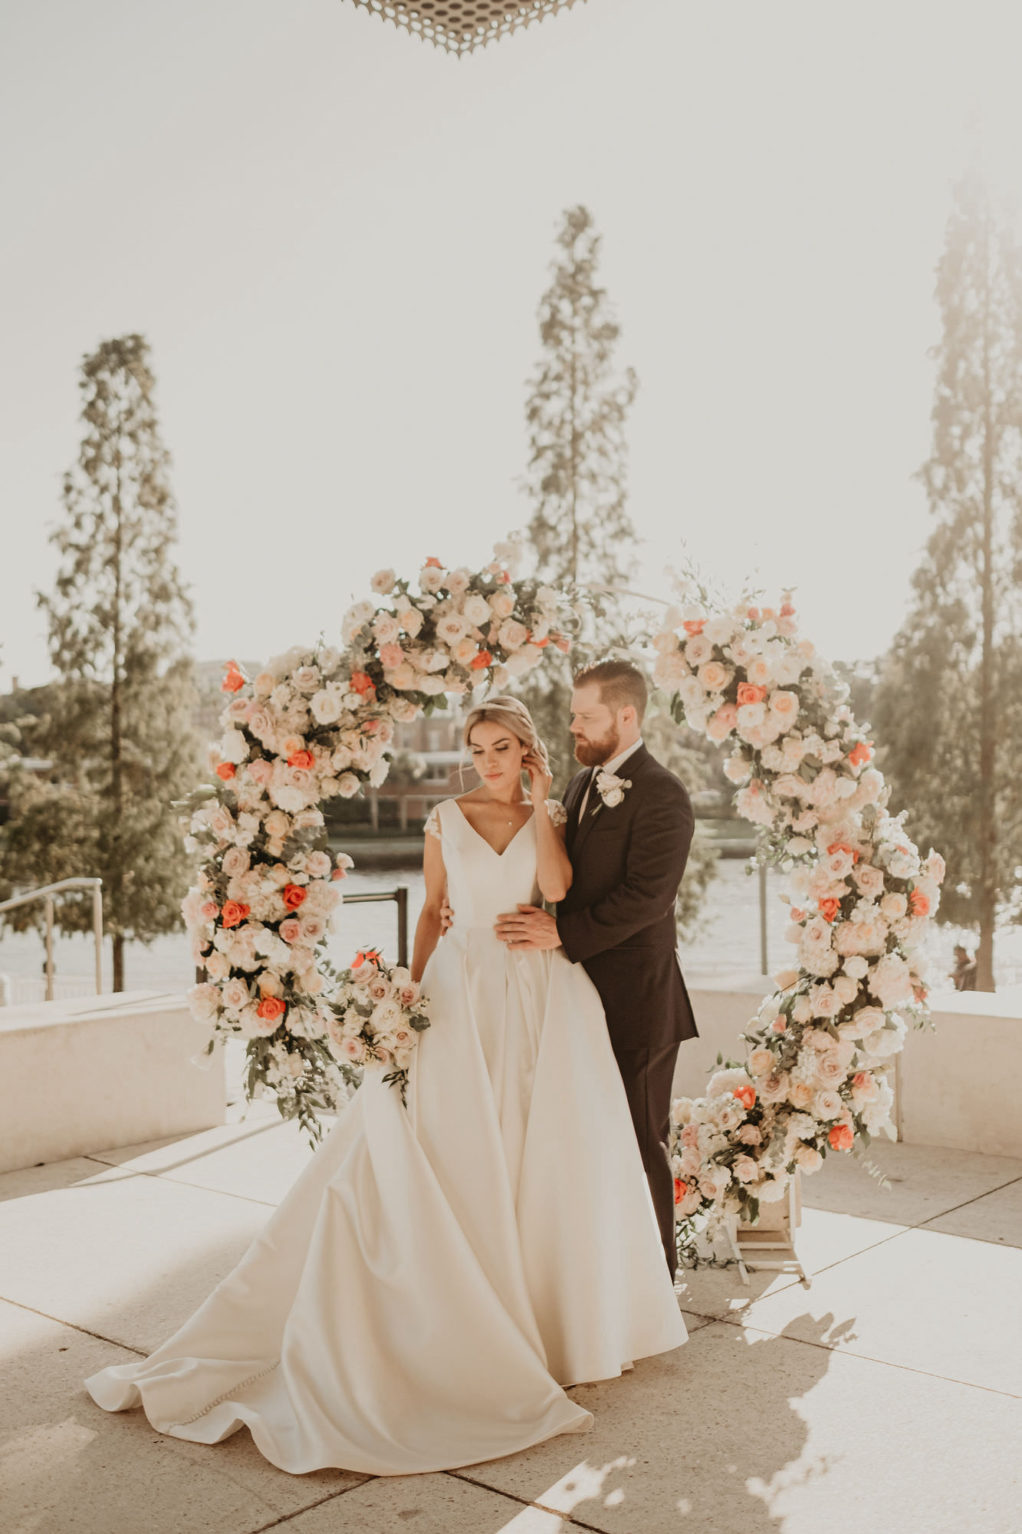 Outdoor Downtown Tampa Waterfront Bride and Groom Portrait with Round Arch Floral Arrangement with Peach Salmon Coral Roses White Hydrangea and Eucalyptus Greenery | V Neck Mikado Satin Ballgown Wedding Dress by Anomalie | Groom Wearing Classic Black Suit Tux